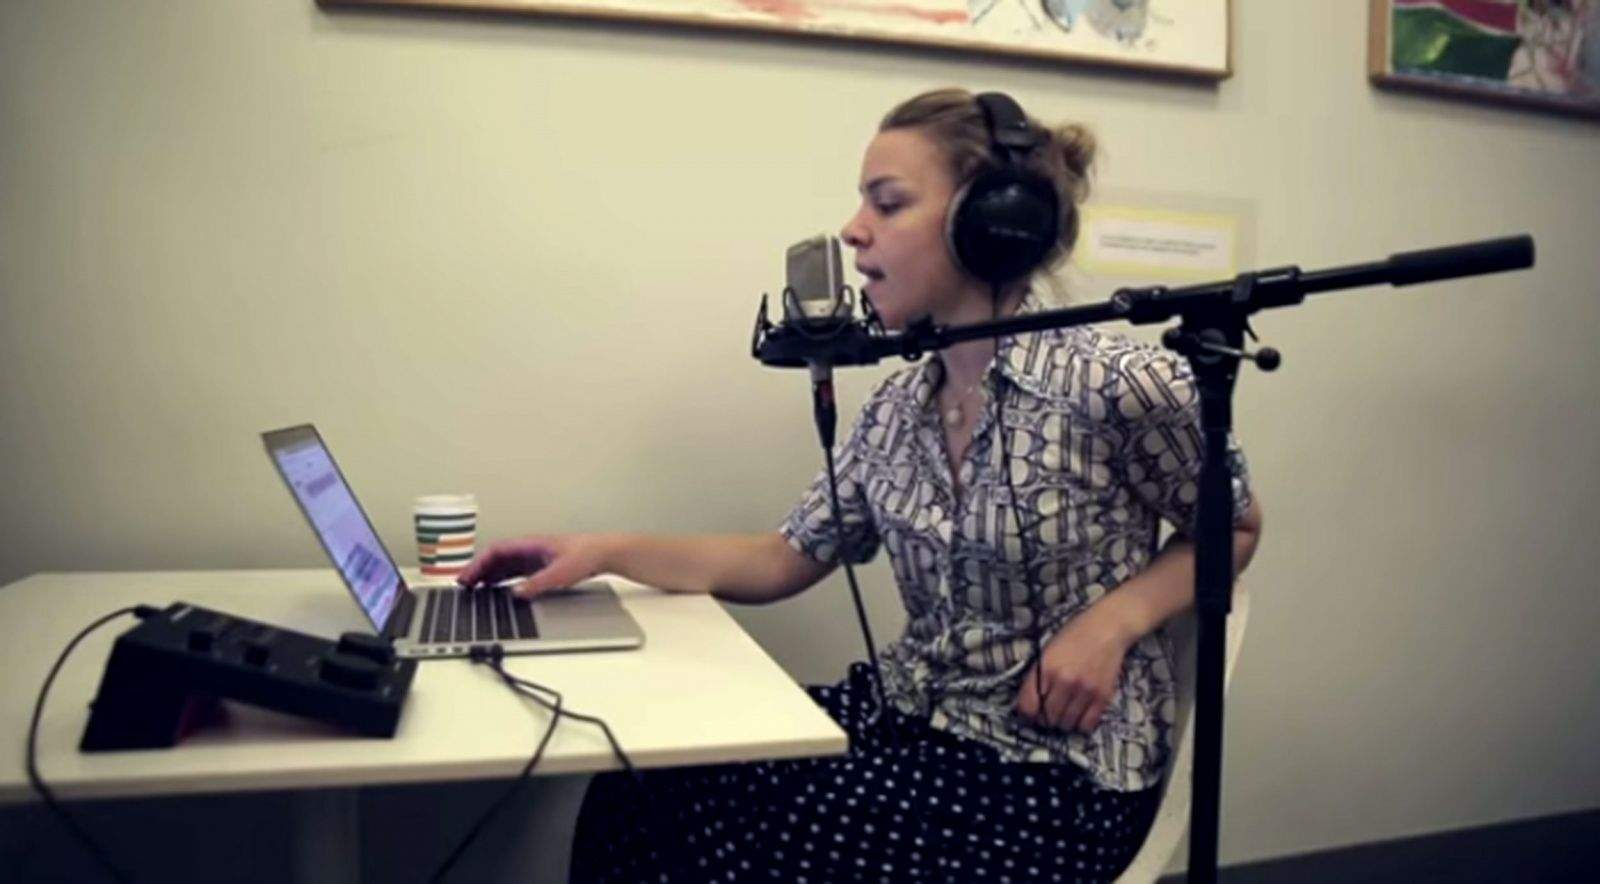 A singer records vocals using Sountrap recording software, which can be used on any device.